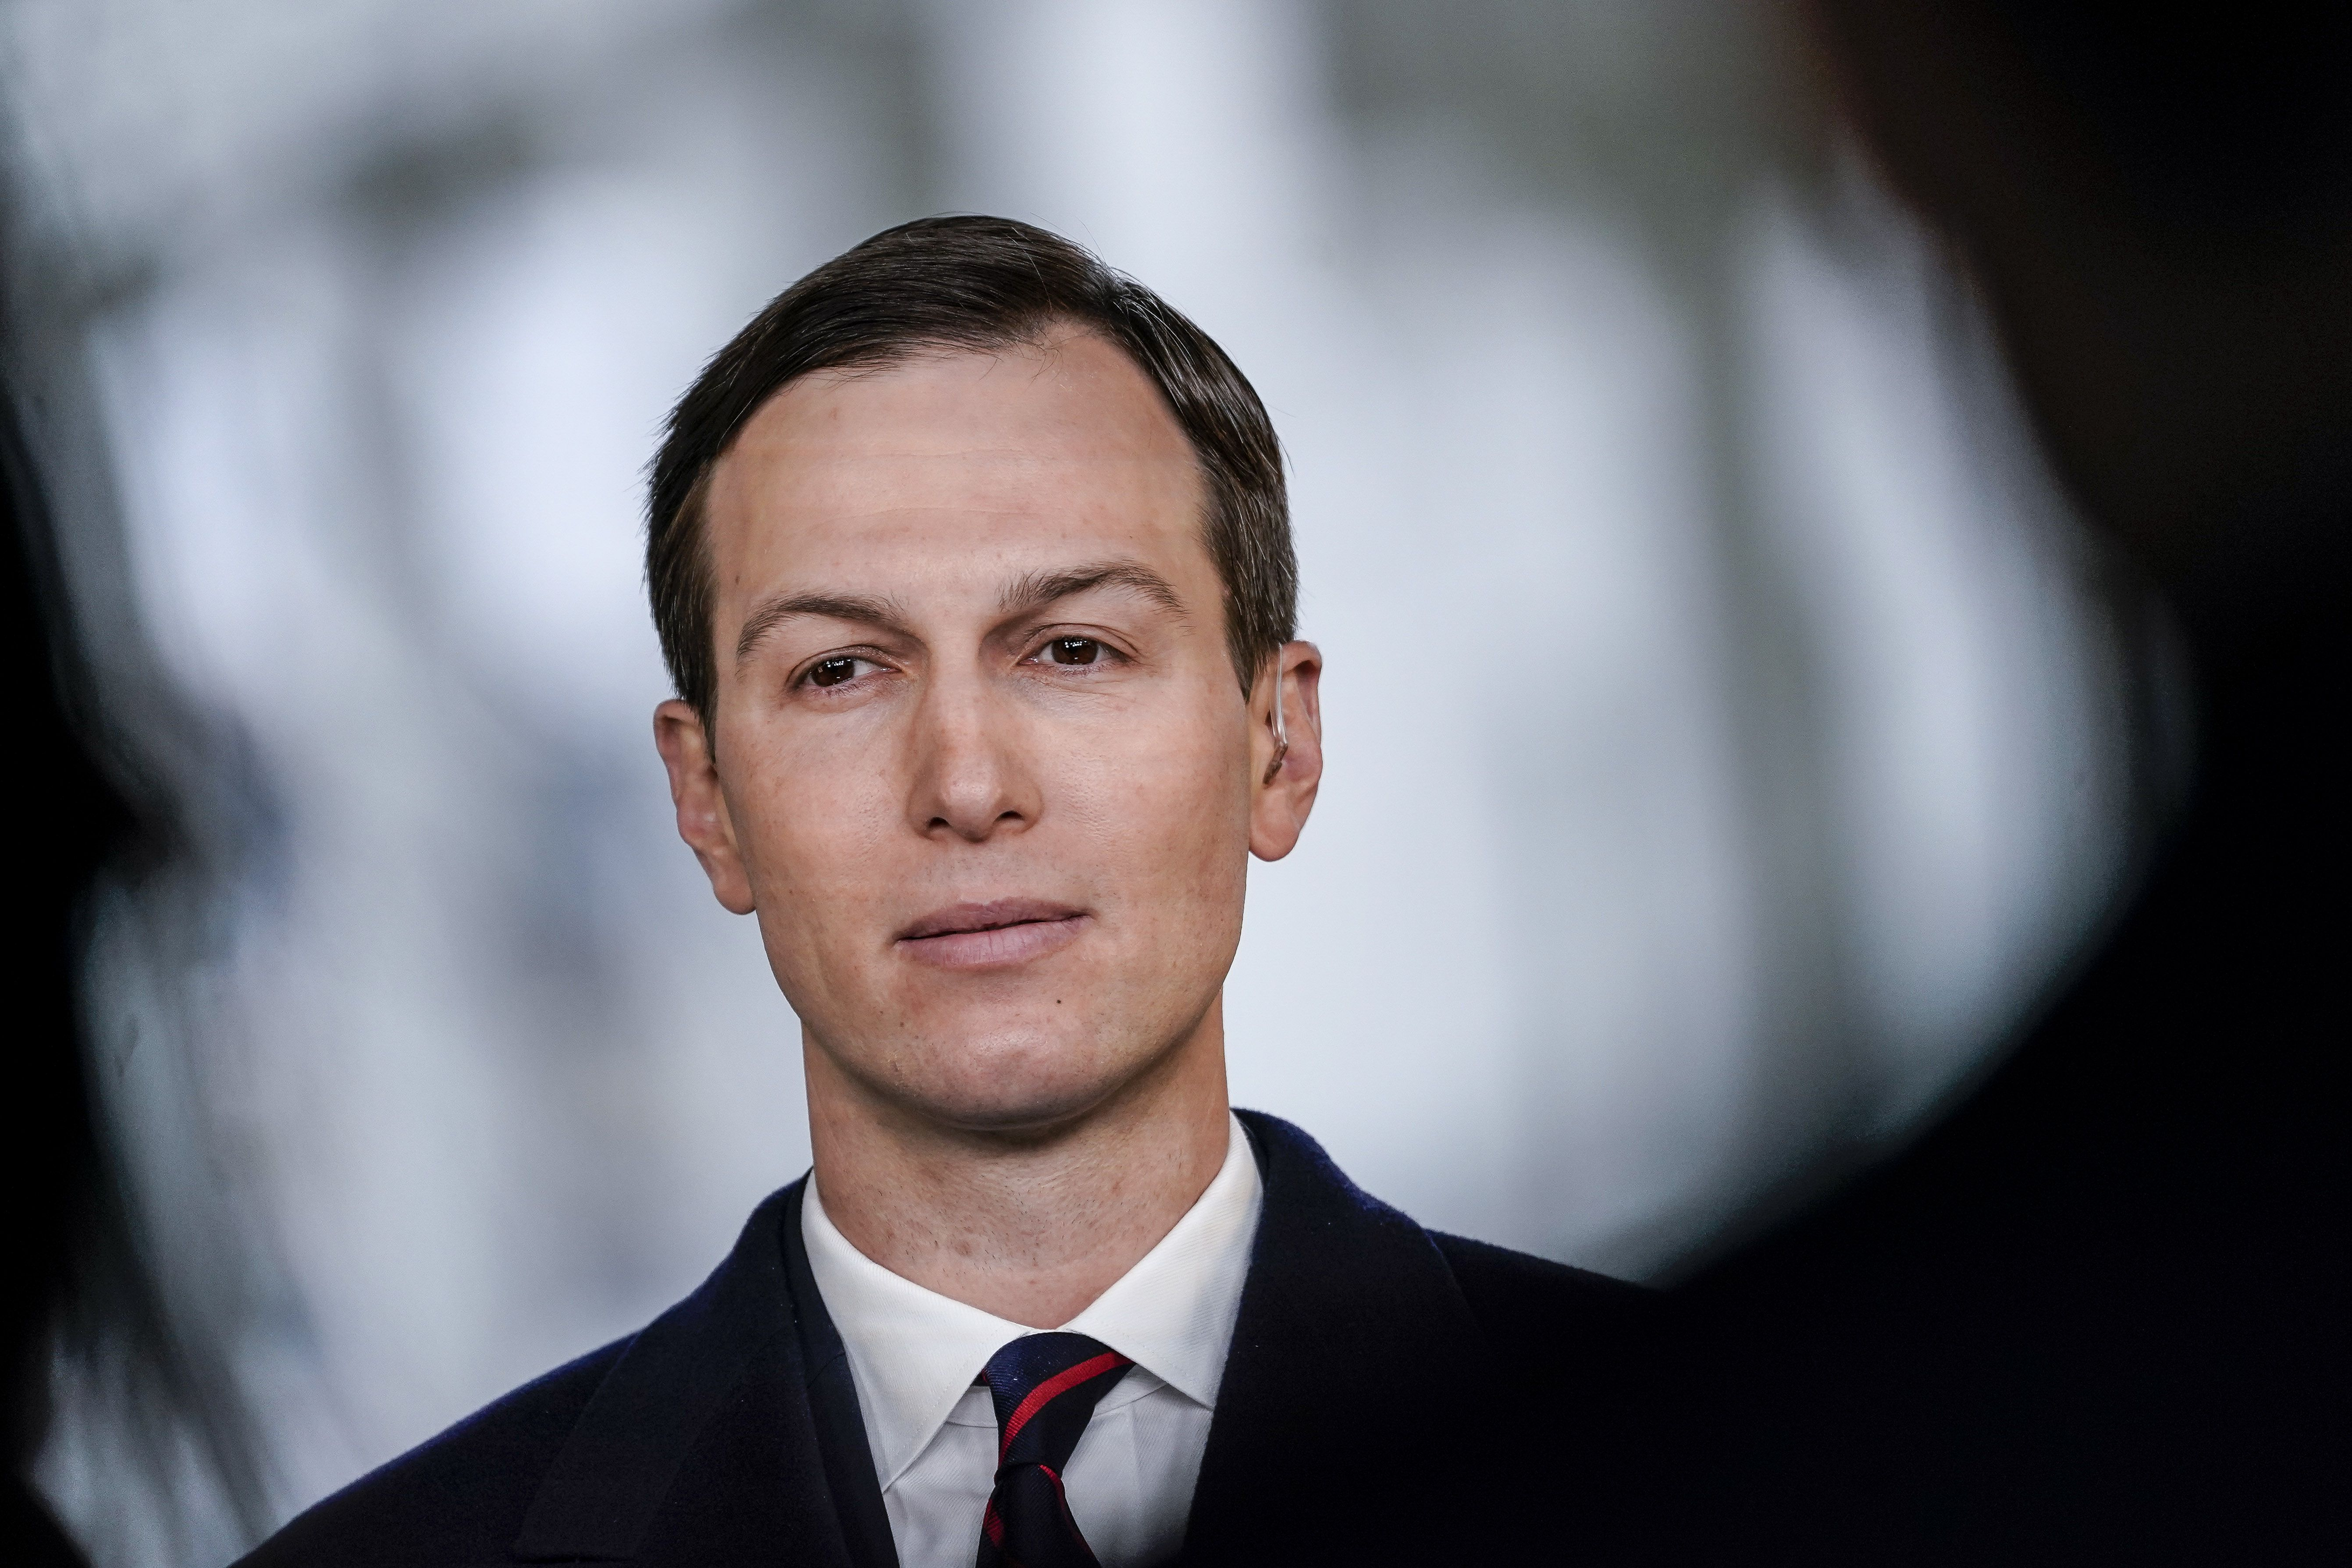 Watchdog files Hatch Act complaint against Jared Kushner - Axios